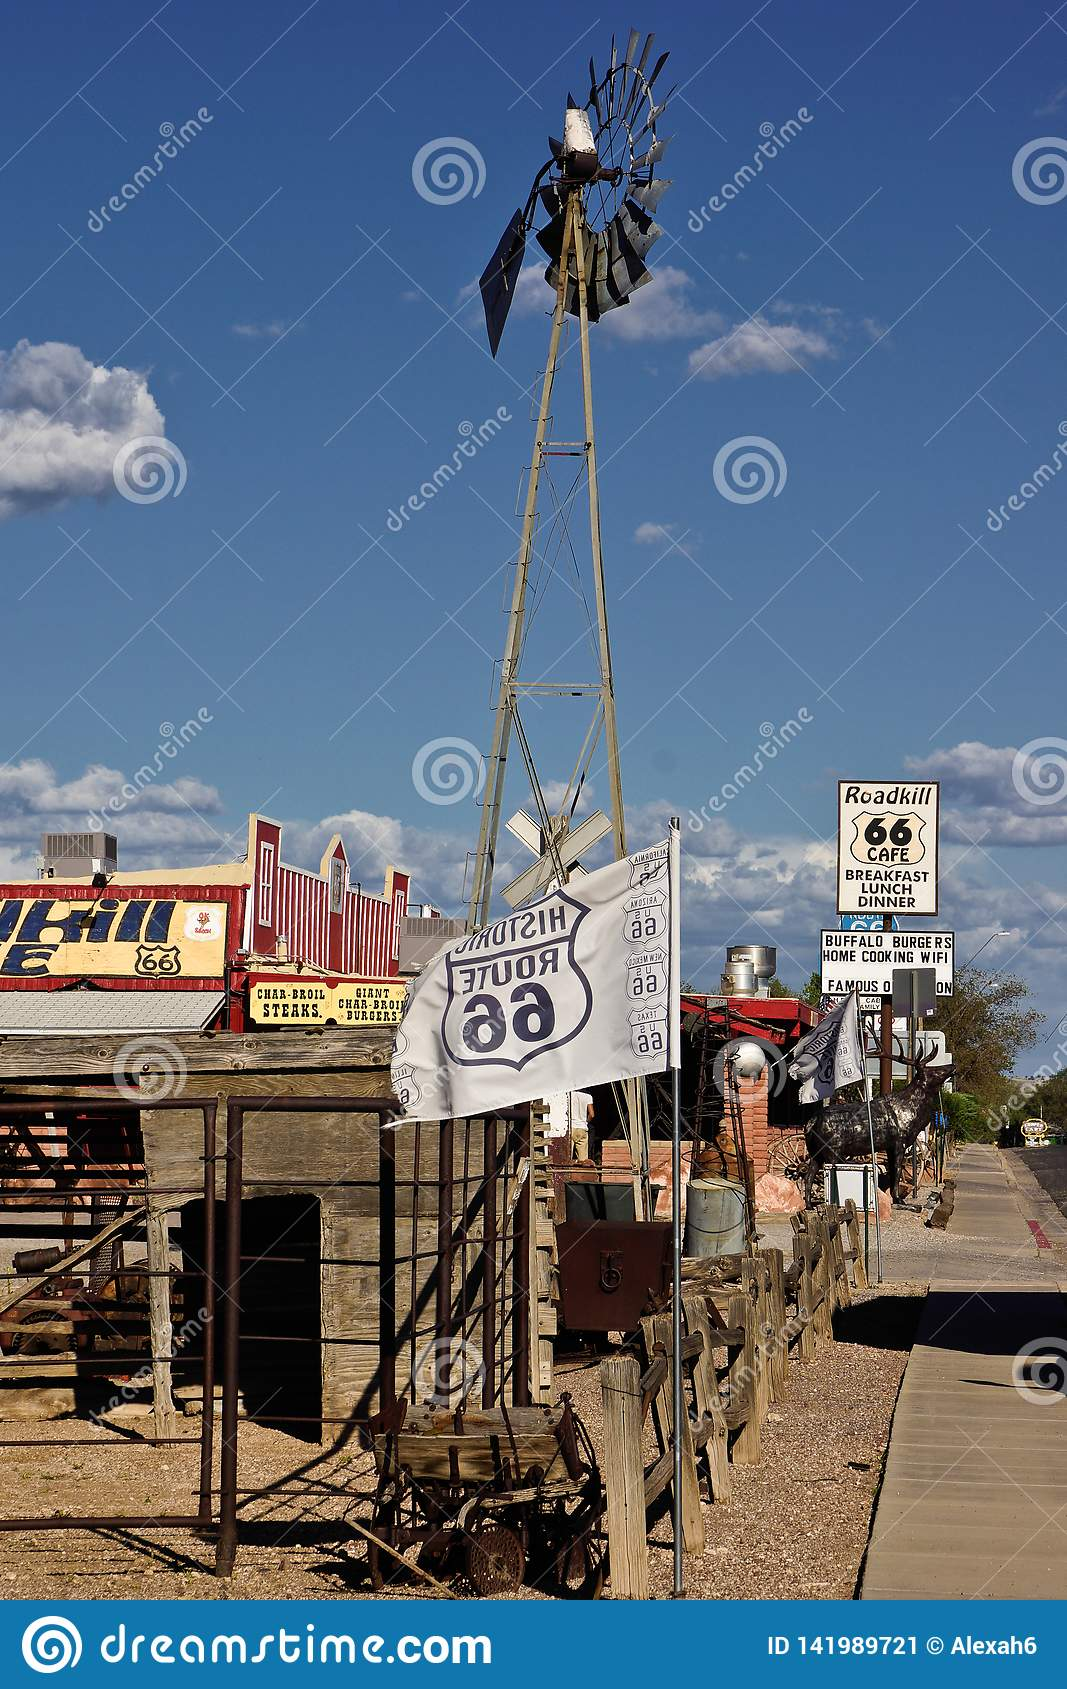 Route 66 cafe gas station on the side of the road